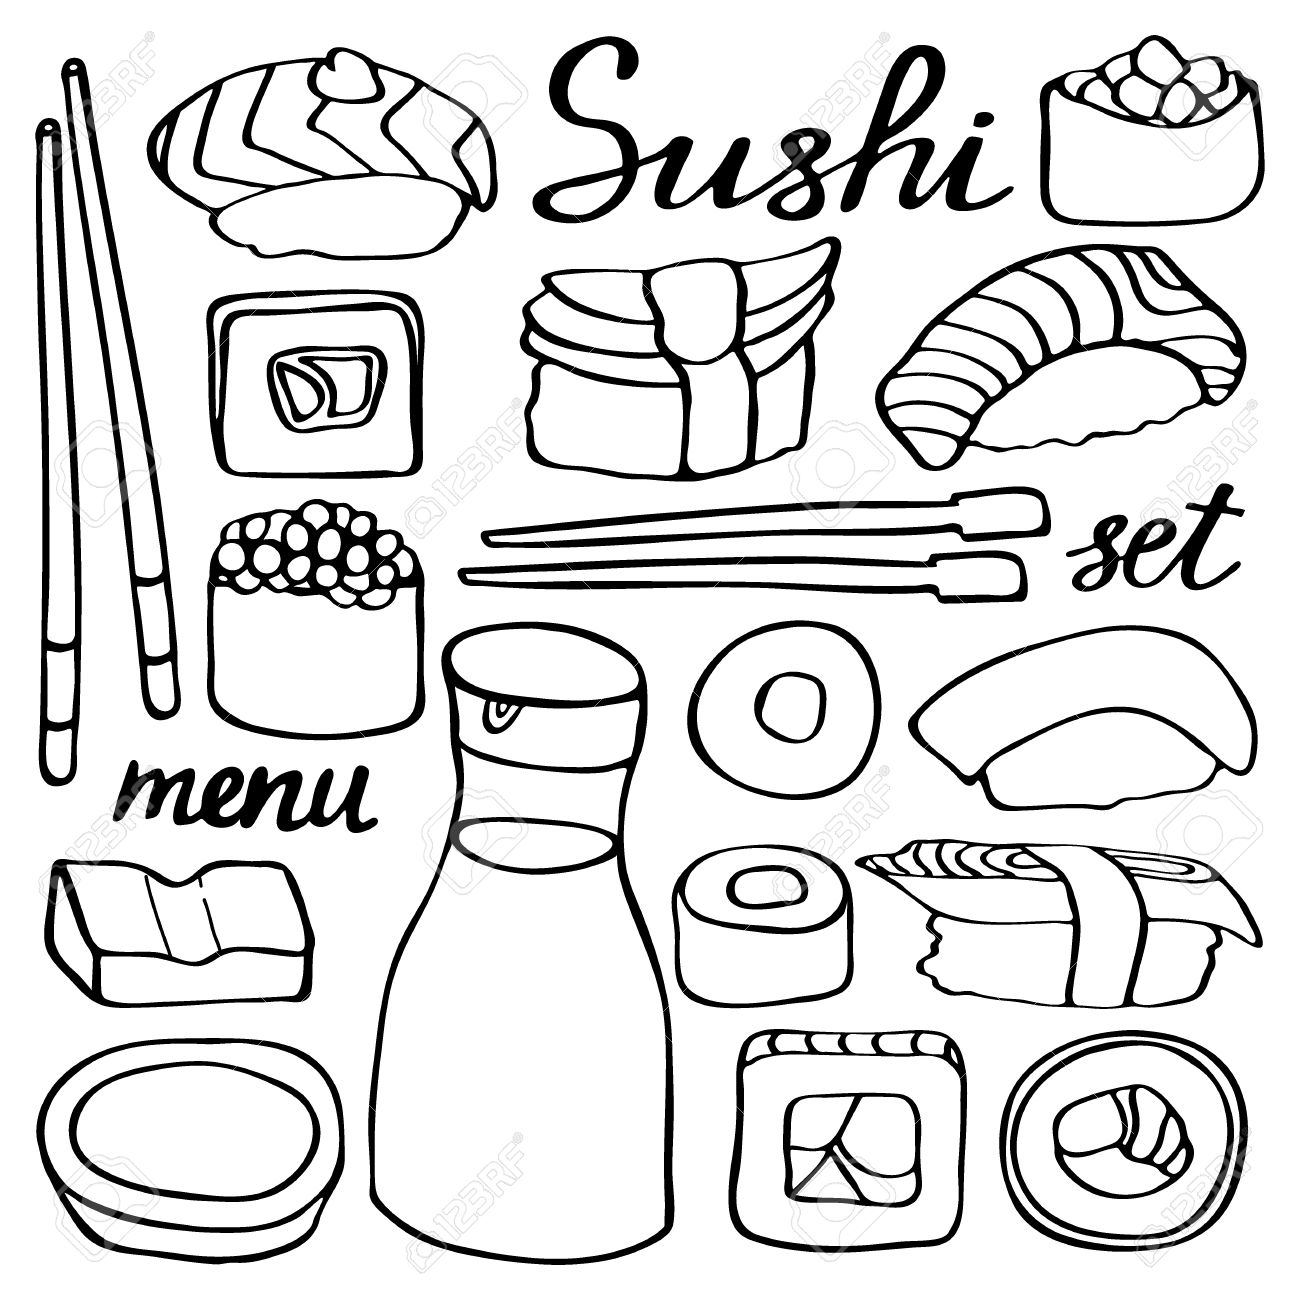 1300x1300 Sushi Set. Hand Drawn Cartoon Collection Of Japanese Food. Doodle